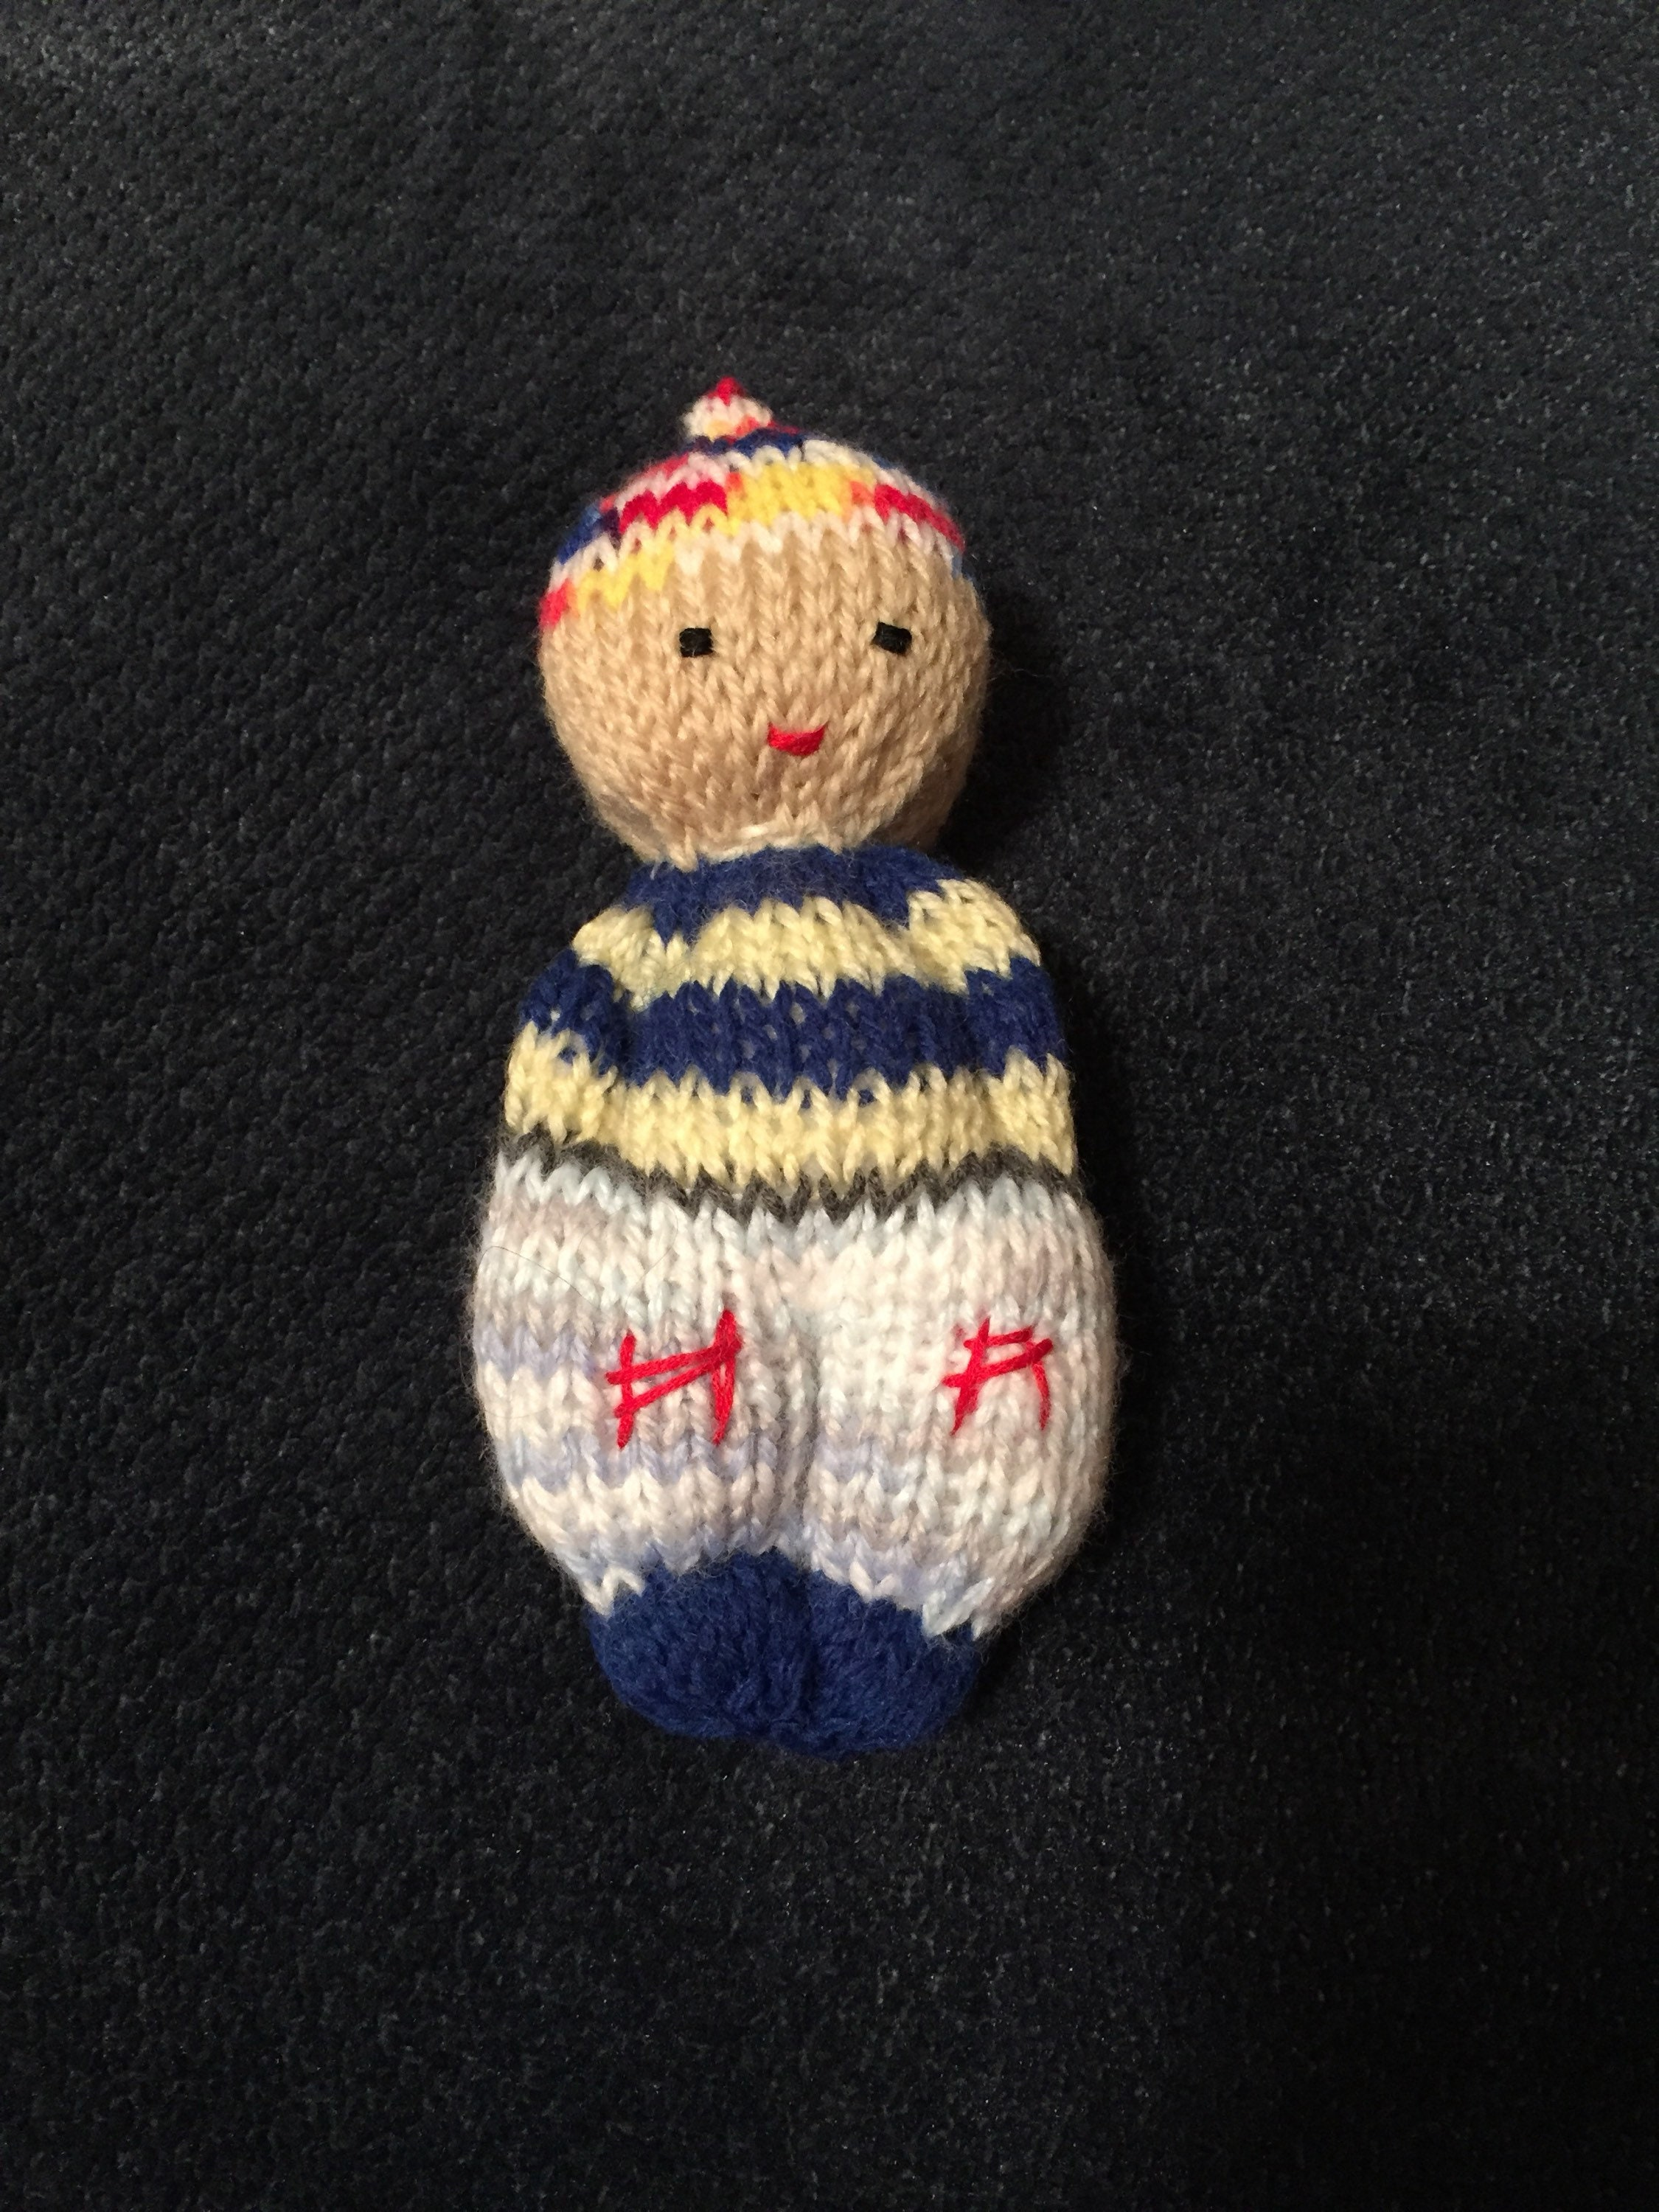 Knitted Doll For Charity Or Donation Knitted Comfort Doll Etsy